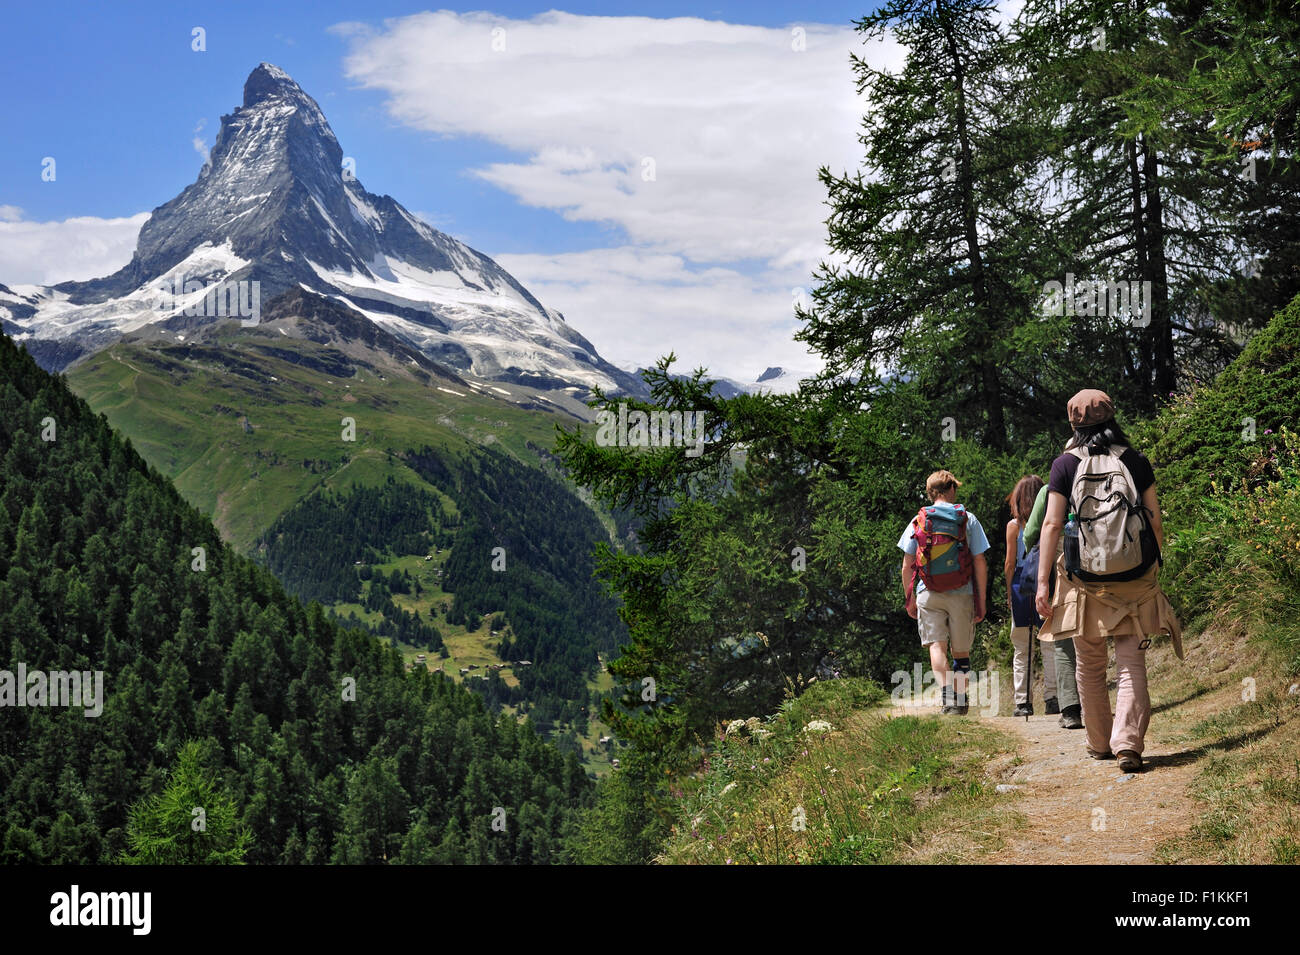 Hikers walking through larch forest with view over the Matterhorn mountain in the Swiss Alps, Valais / Wallis, Switzerland - Stock Image